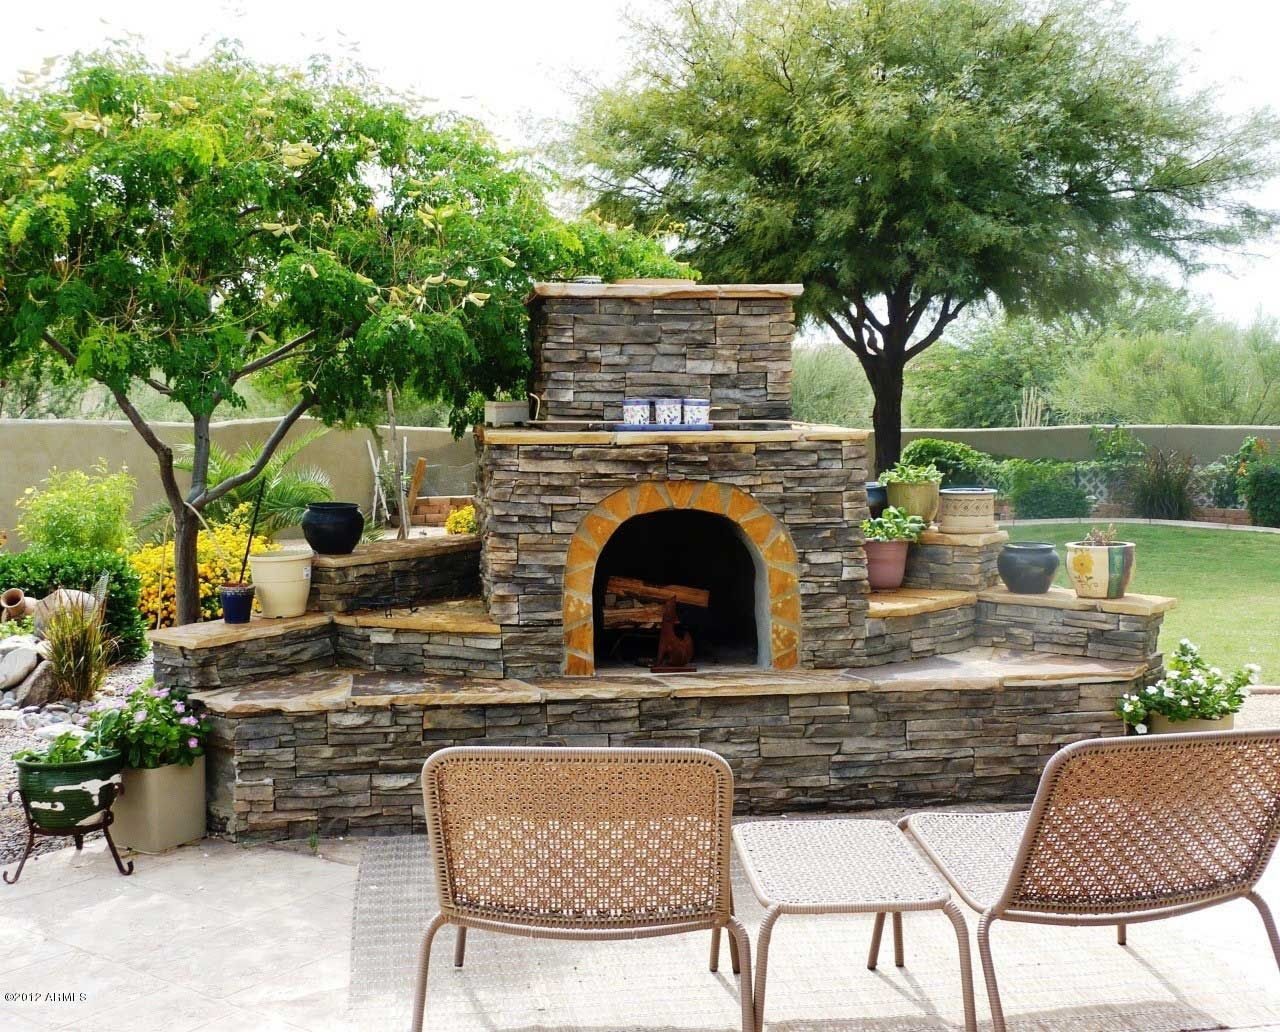 Outdoor Fireplace Design Ideas exterior design captivating backyard brick fireplace designs and images of outdoor fireplaces as well as Creative Ideas Outdoor Fireplace Designs Outdoor Design And Ideas